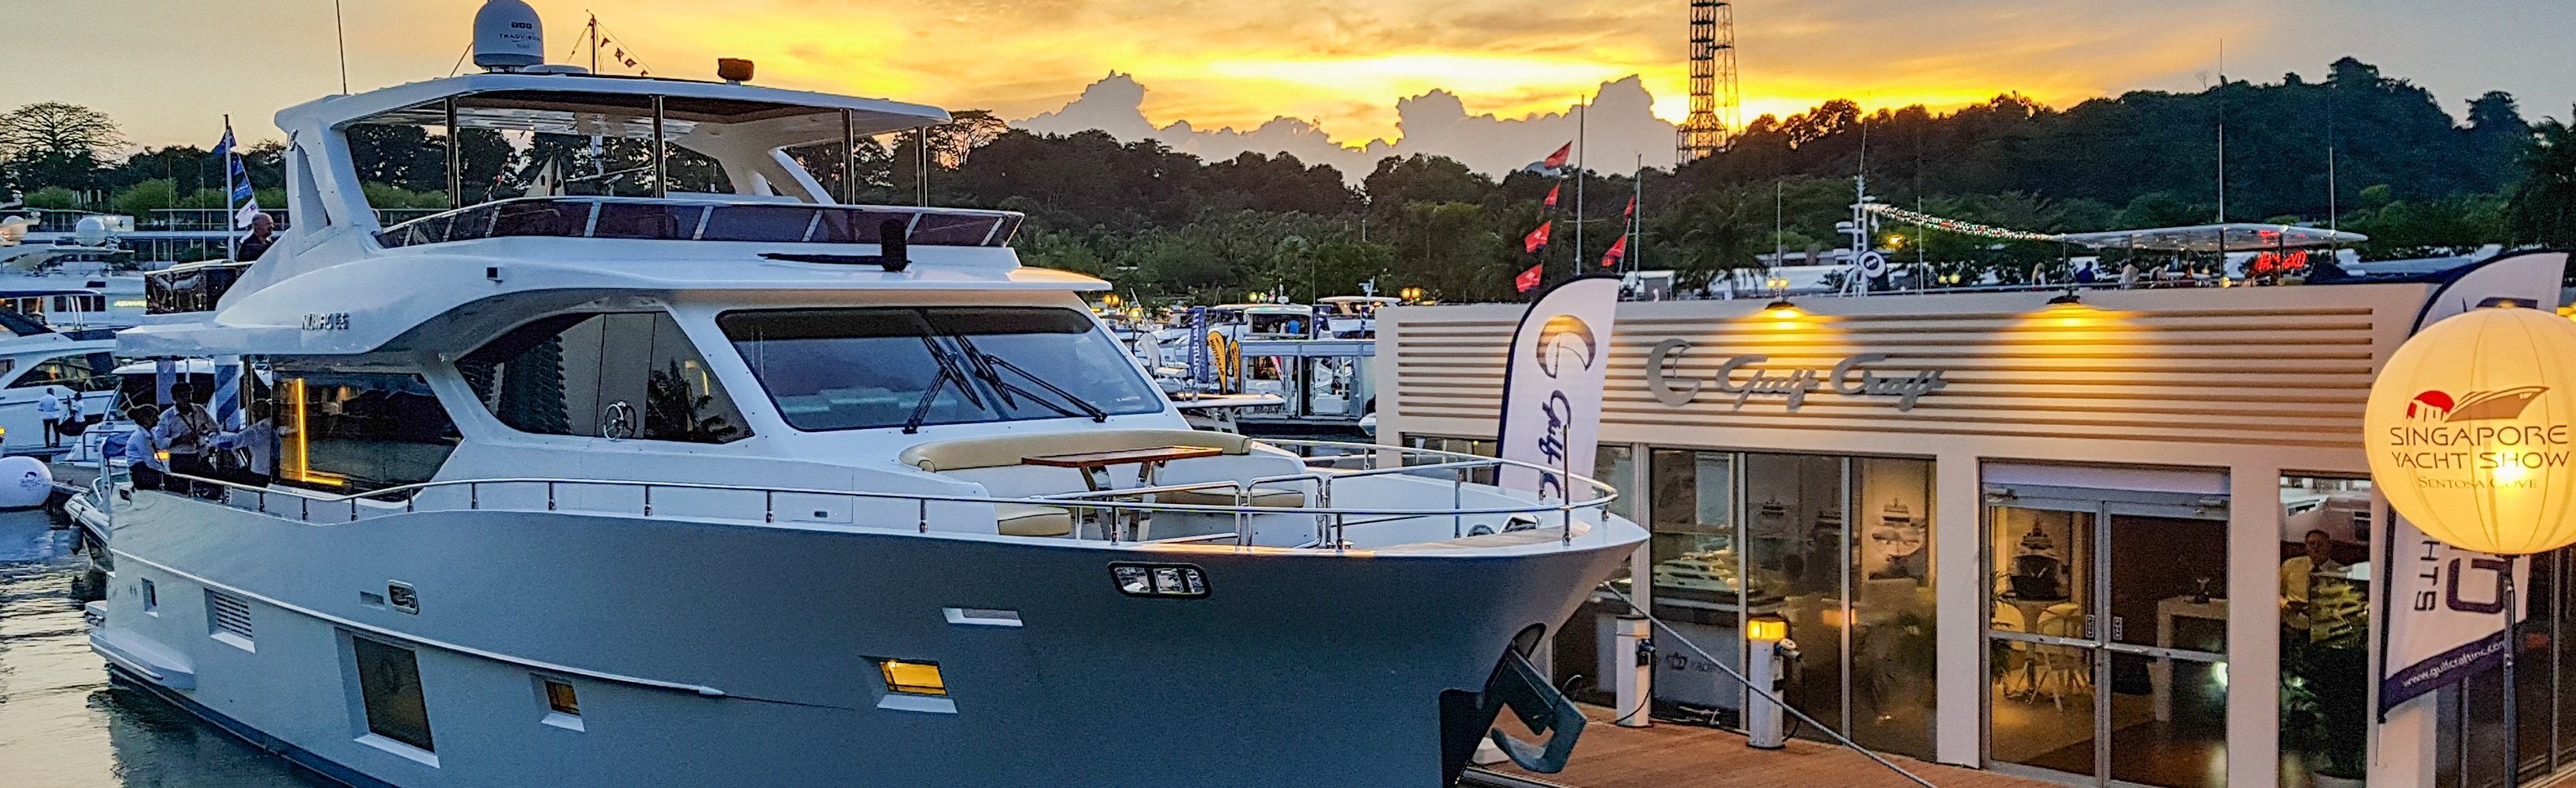 Gulf-Craft,-Singapore-Yacht-Show-2018-3